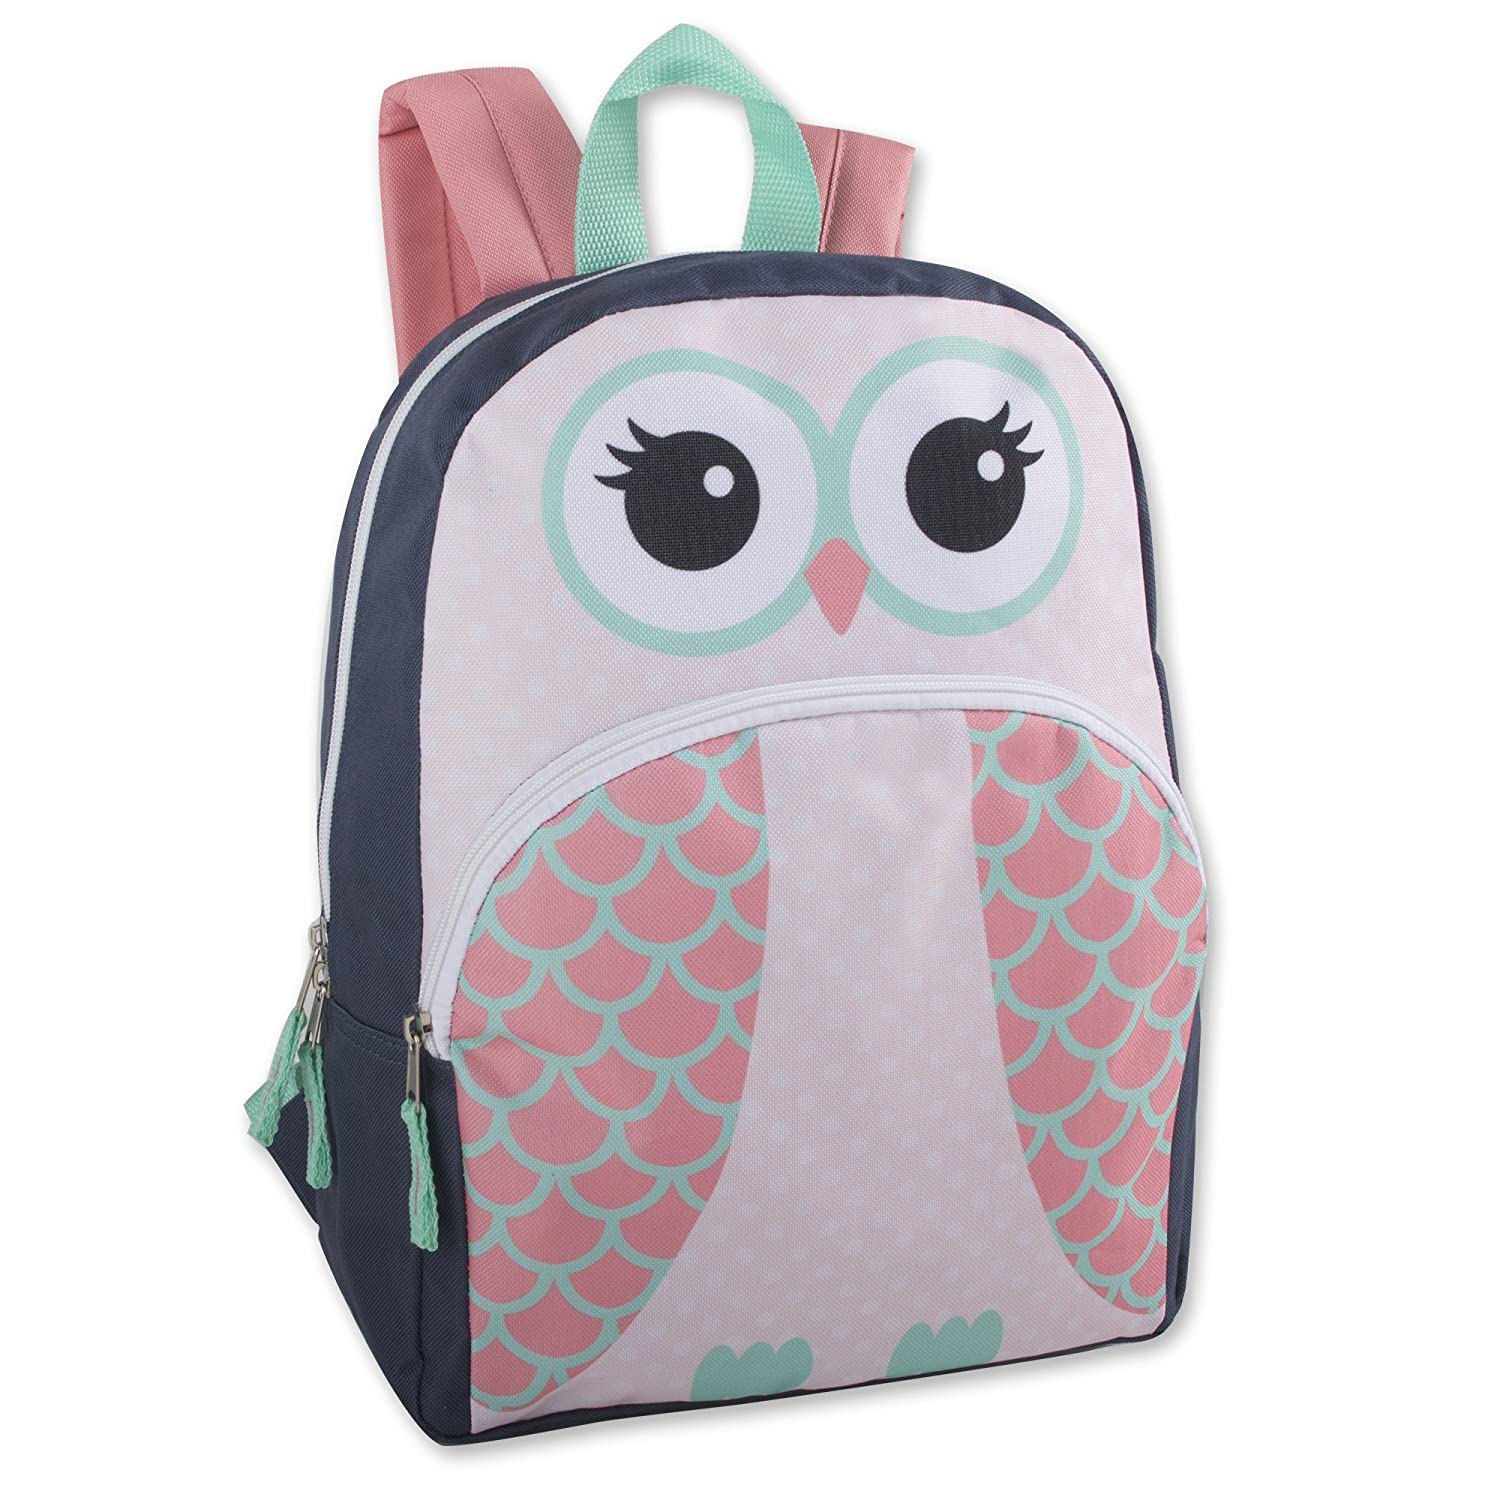 Kids Animal Friends Critter Backpacks For Boys & Girls With Reinforced Straps